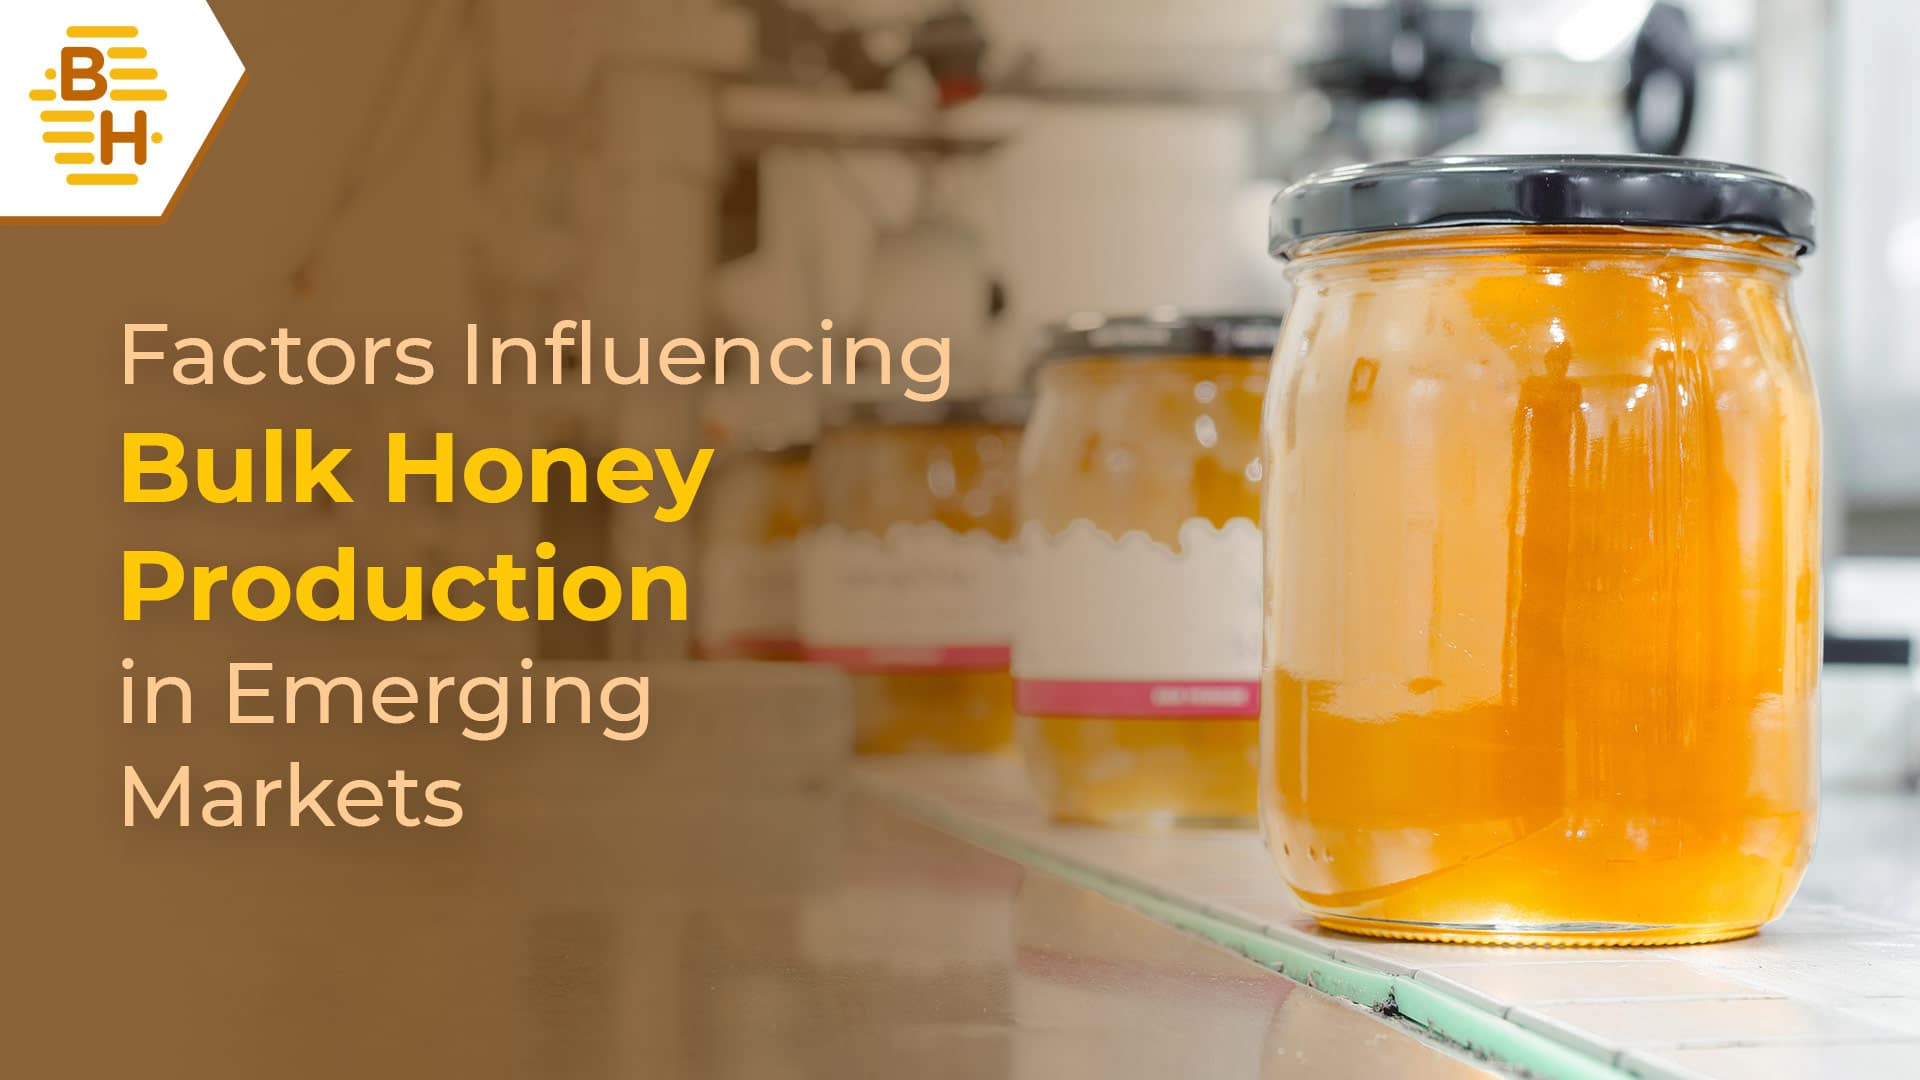 Factors-Influencing-Bulk-Honey-Production-in-Emerging-Markets